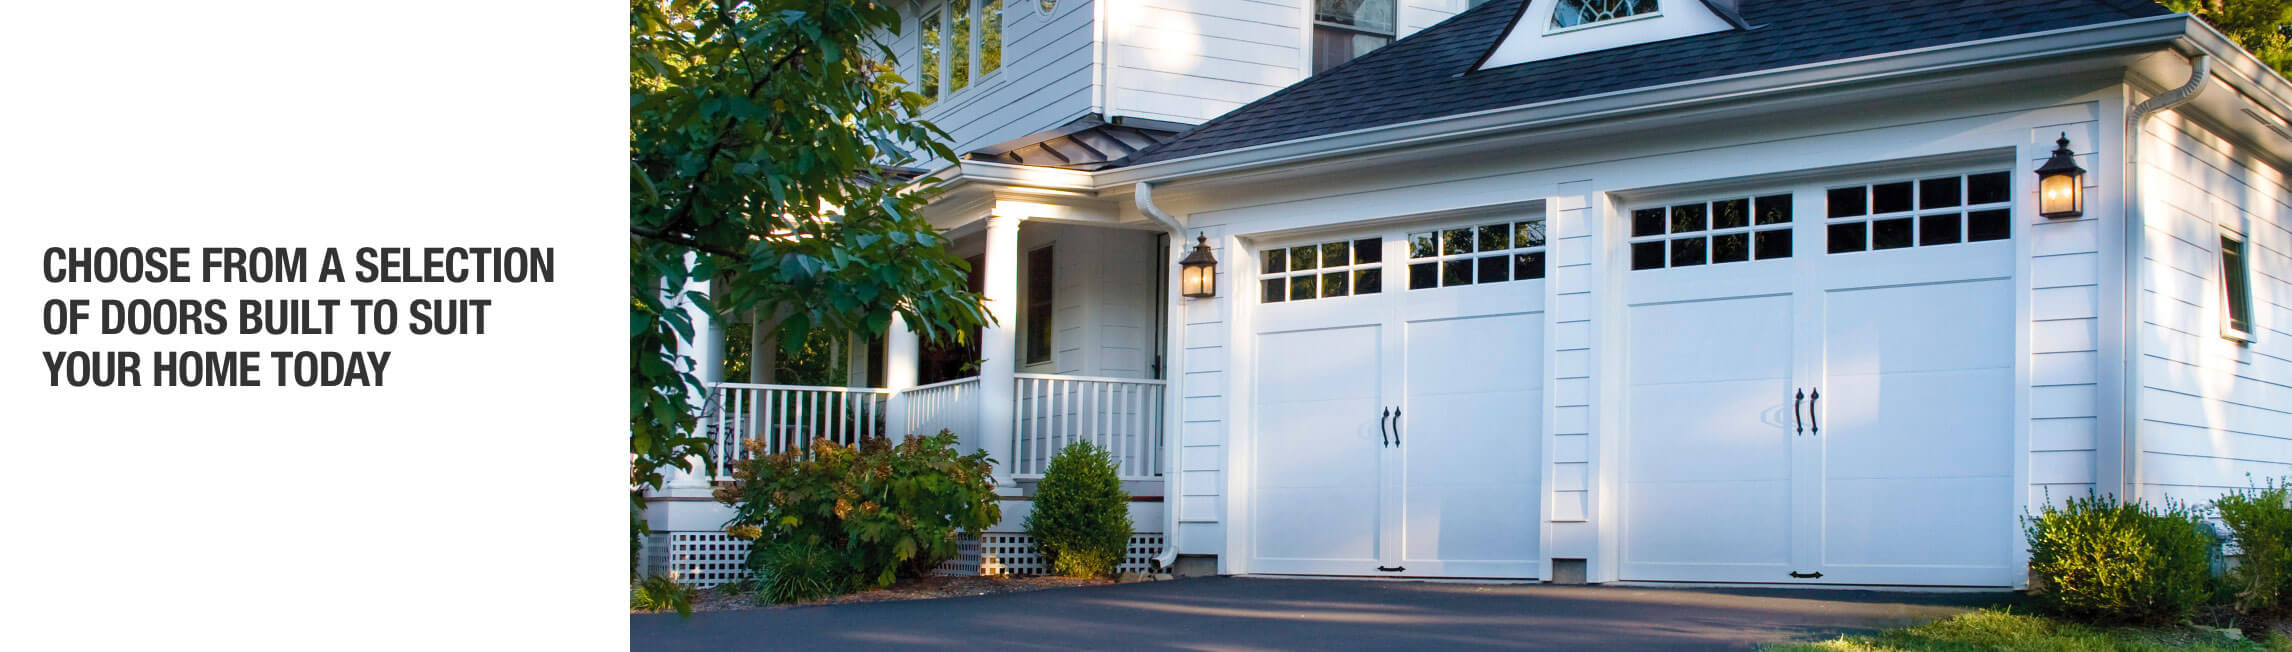 white traditional home with black roof and white siding and double white carriage style garage doors